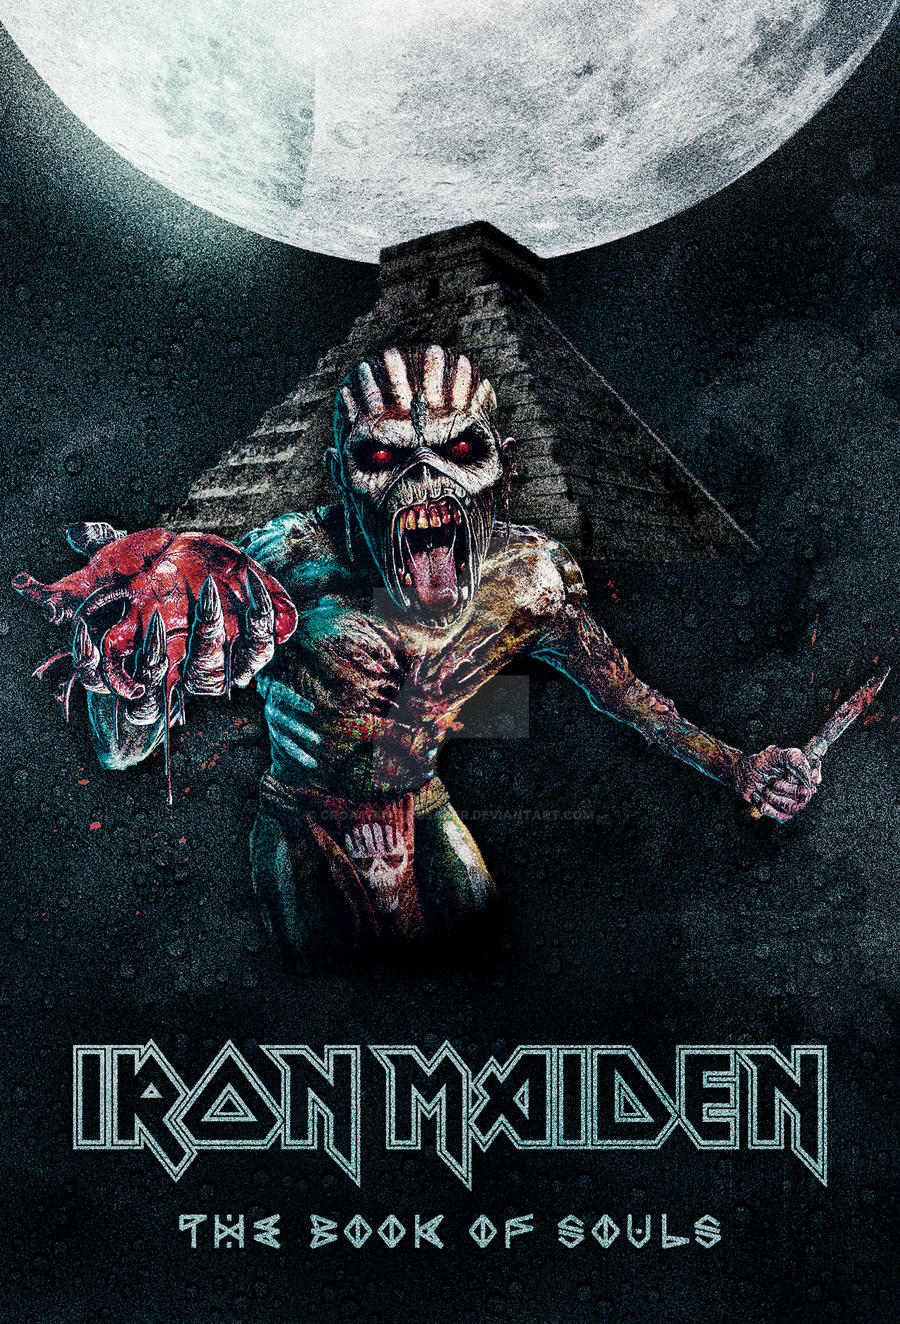 Iron Maiden The Book Of Souls Poster By Croatian Crusader On Deviantart